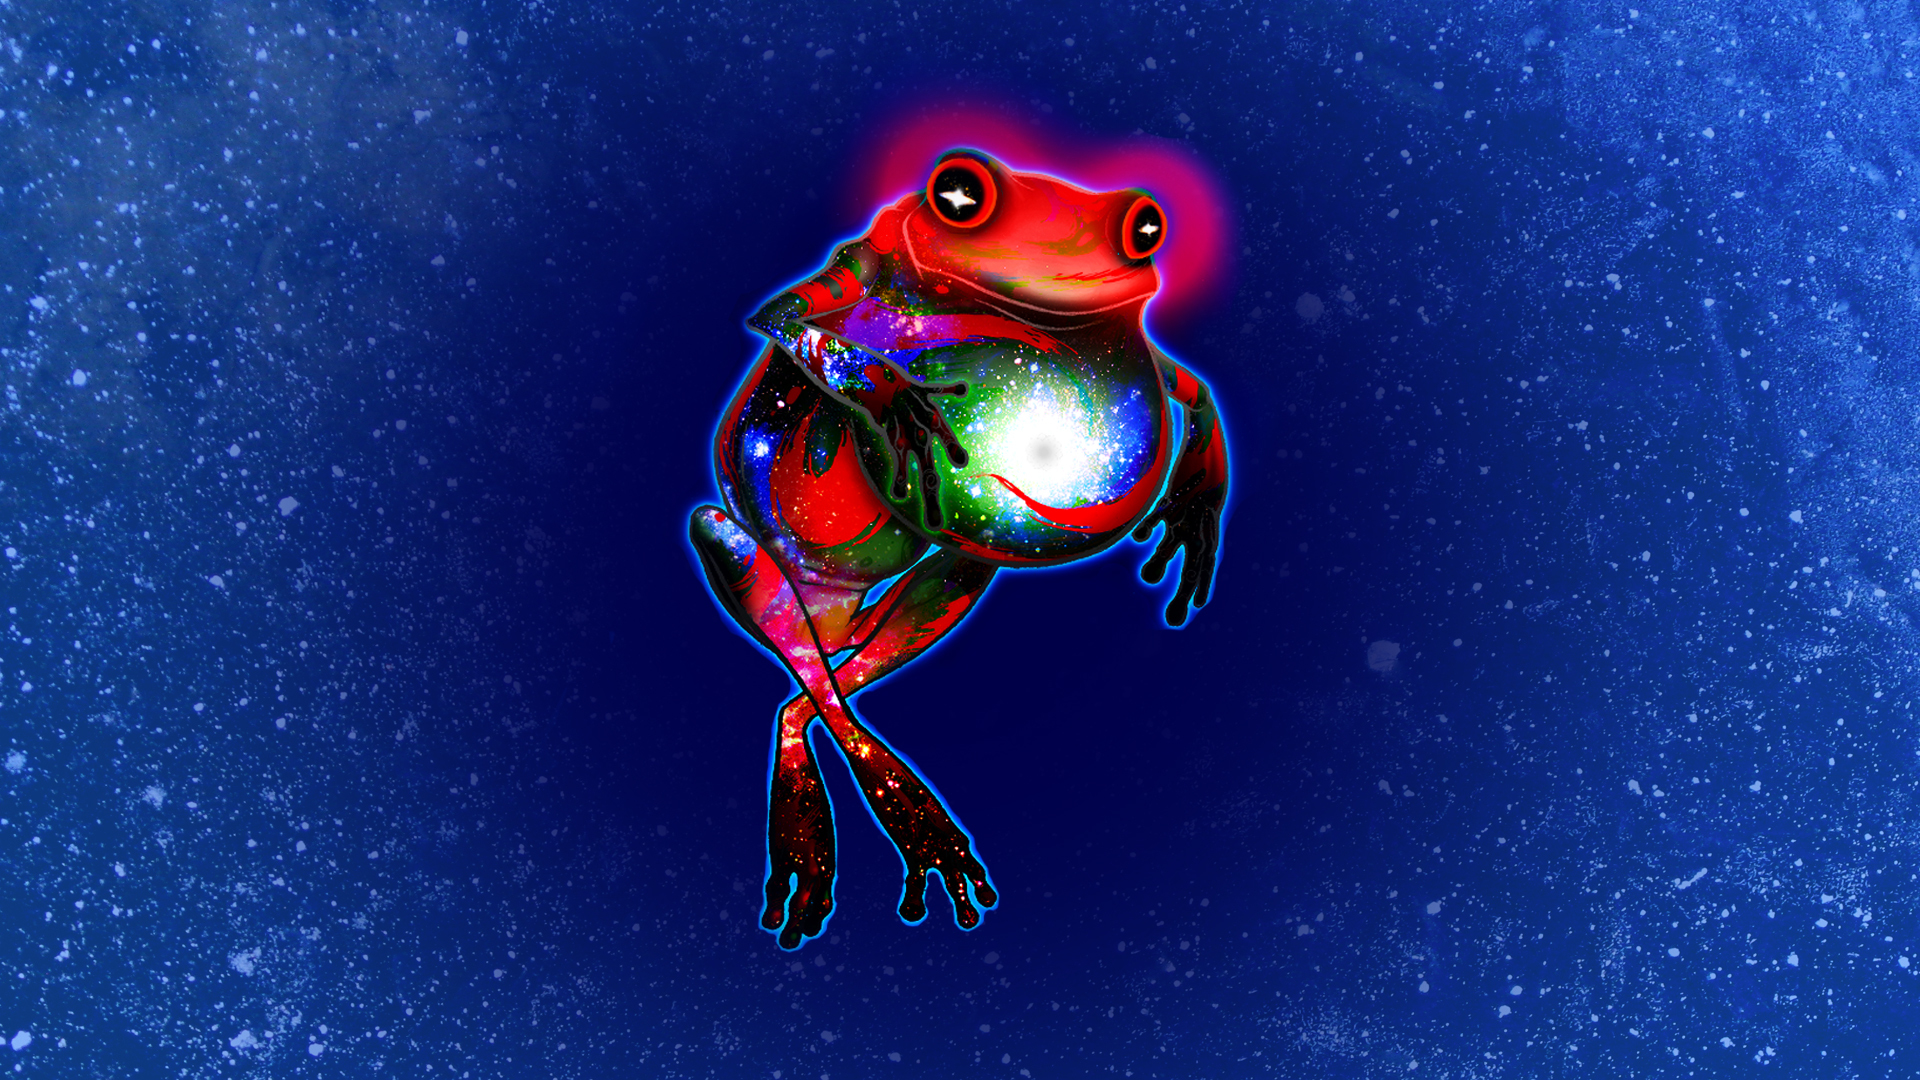 Frogs homestuck HD Wallpaper